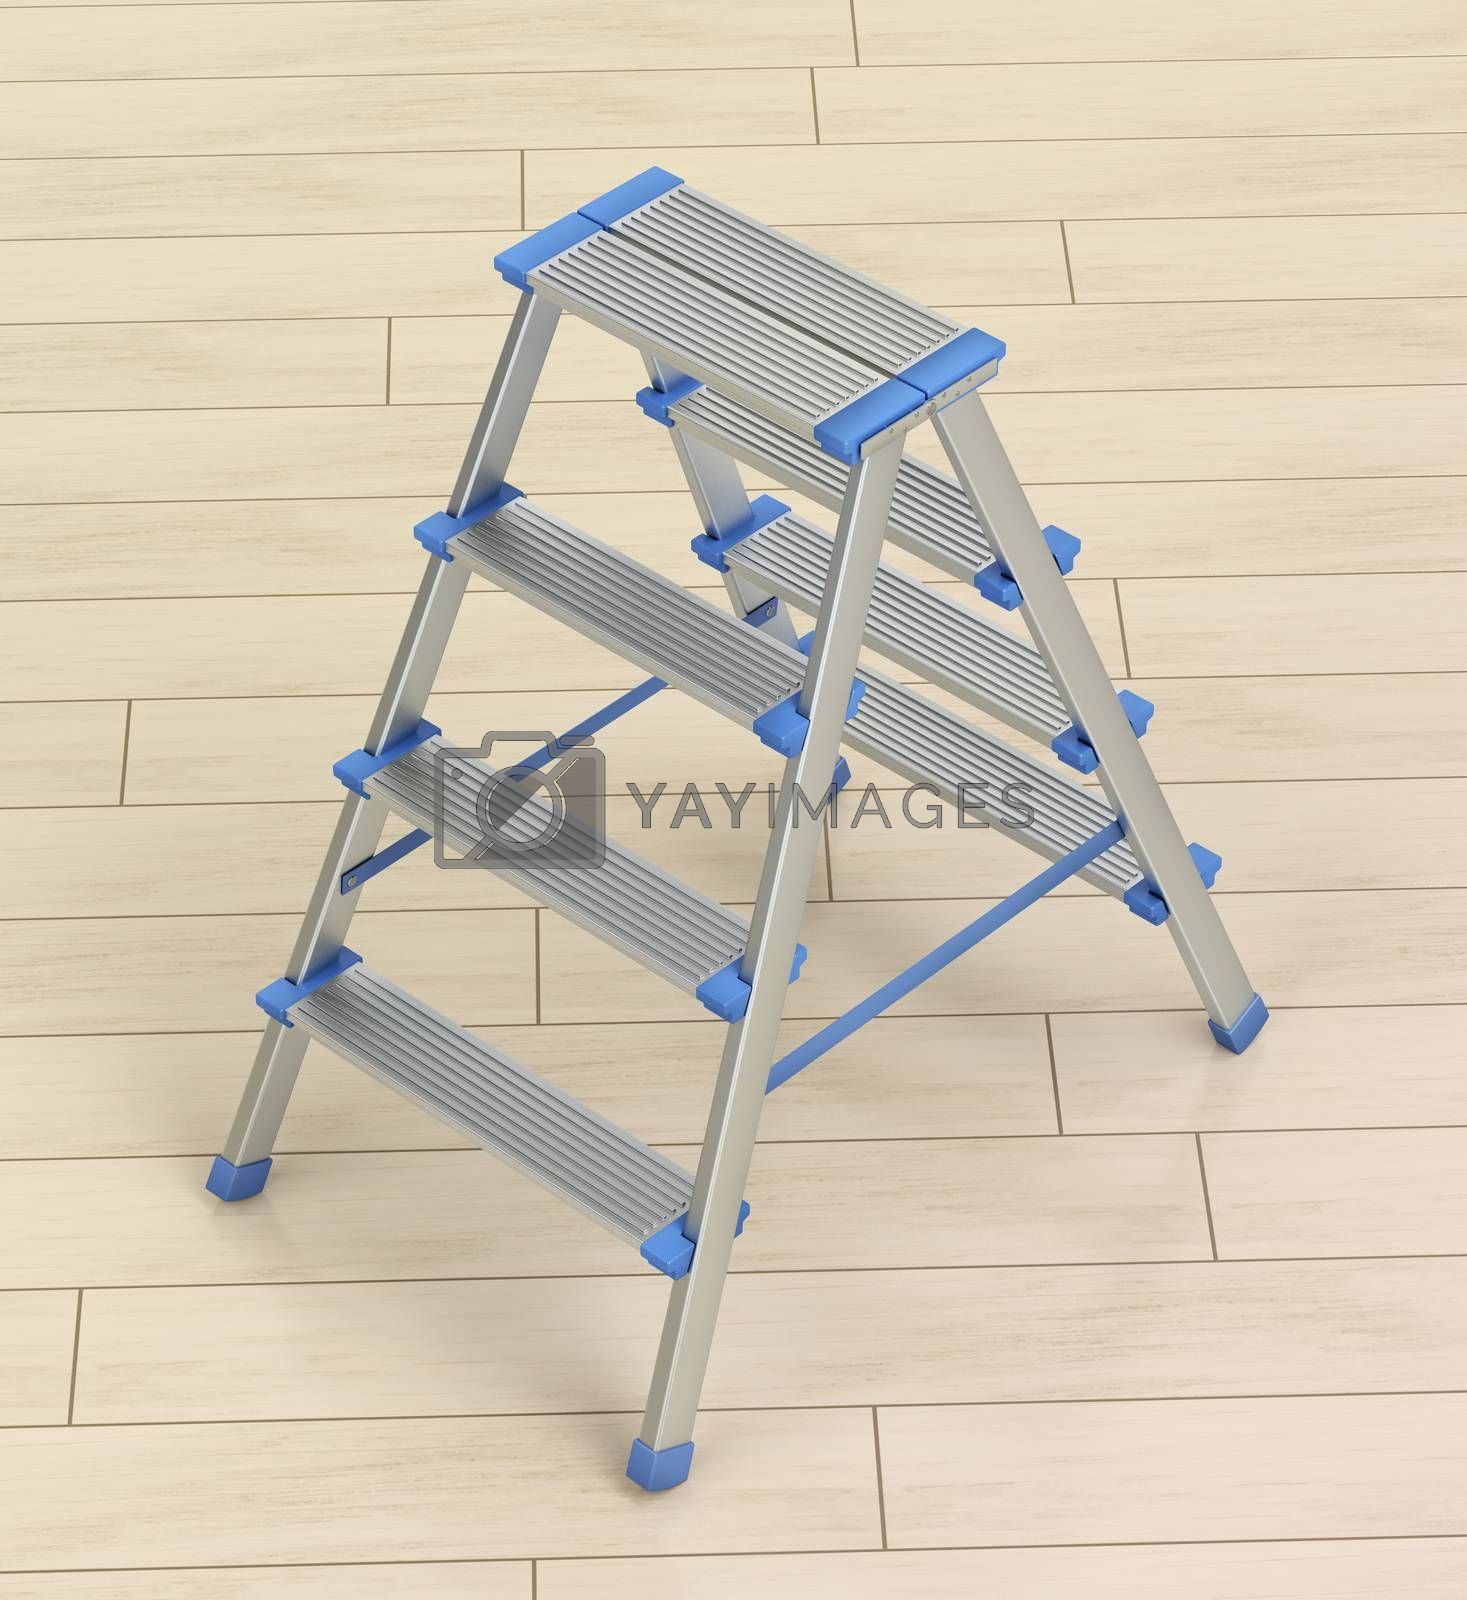 Small aluminum ladder on wooden floor